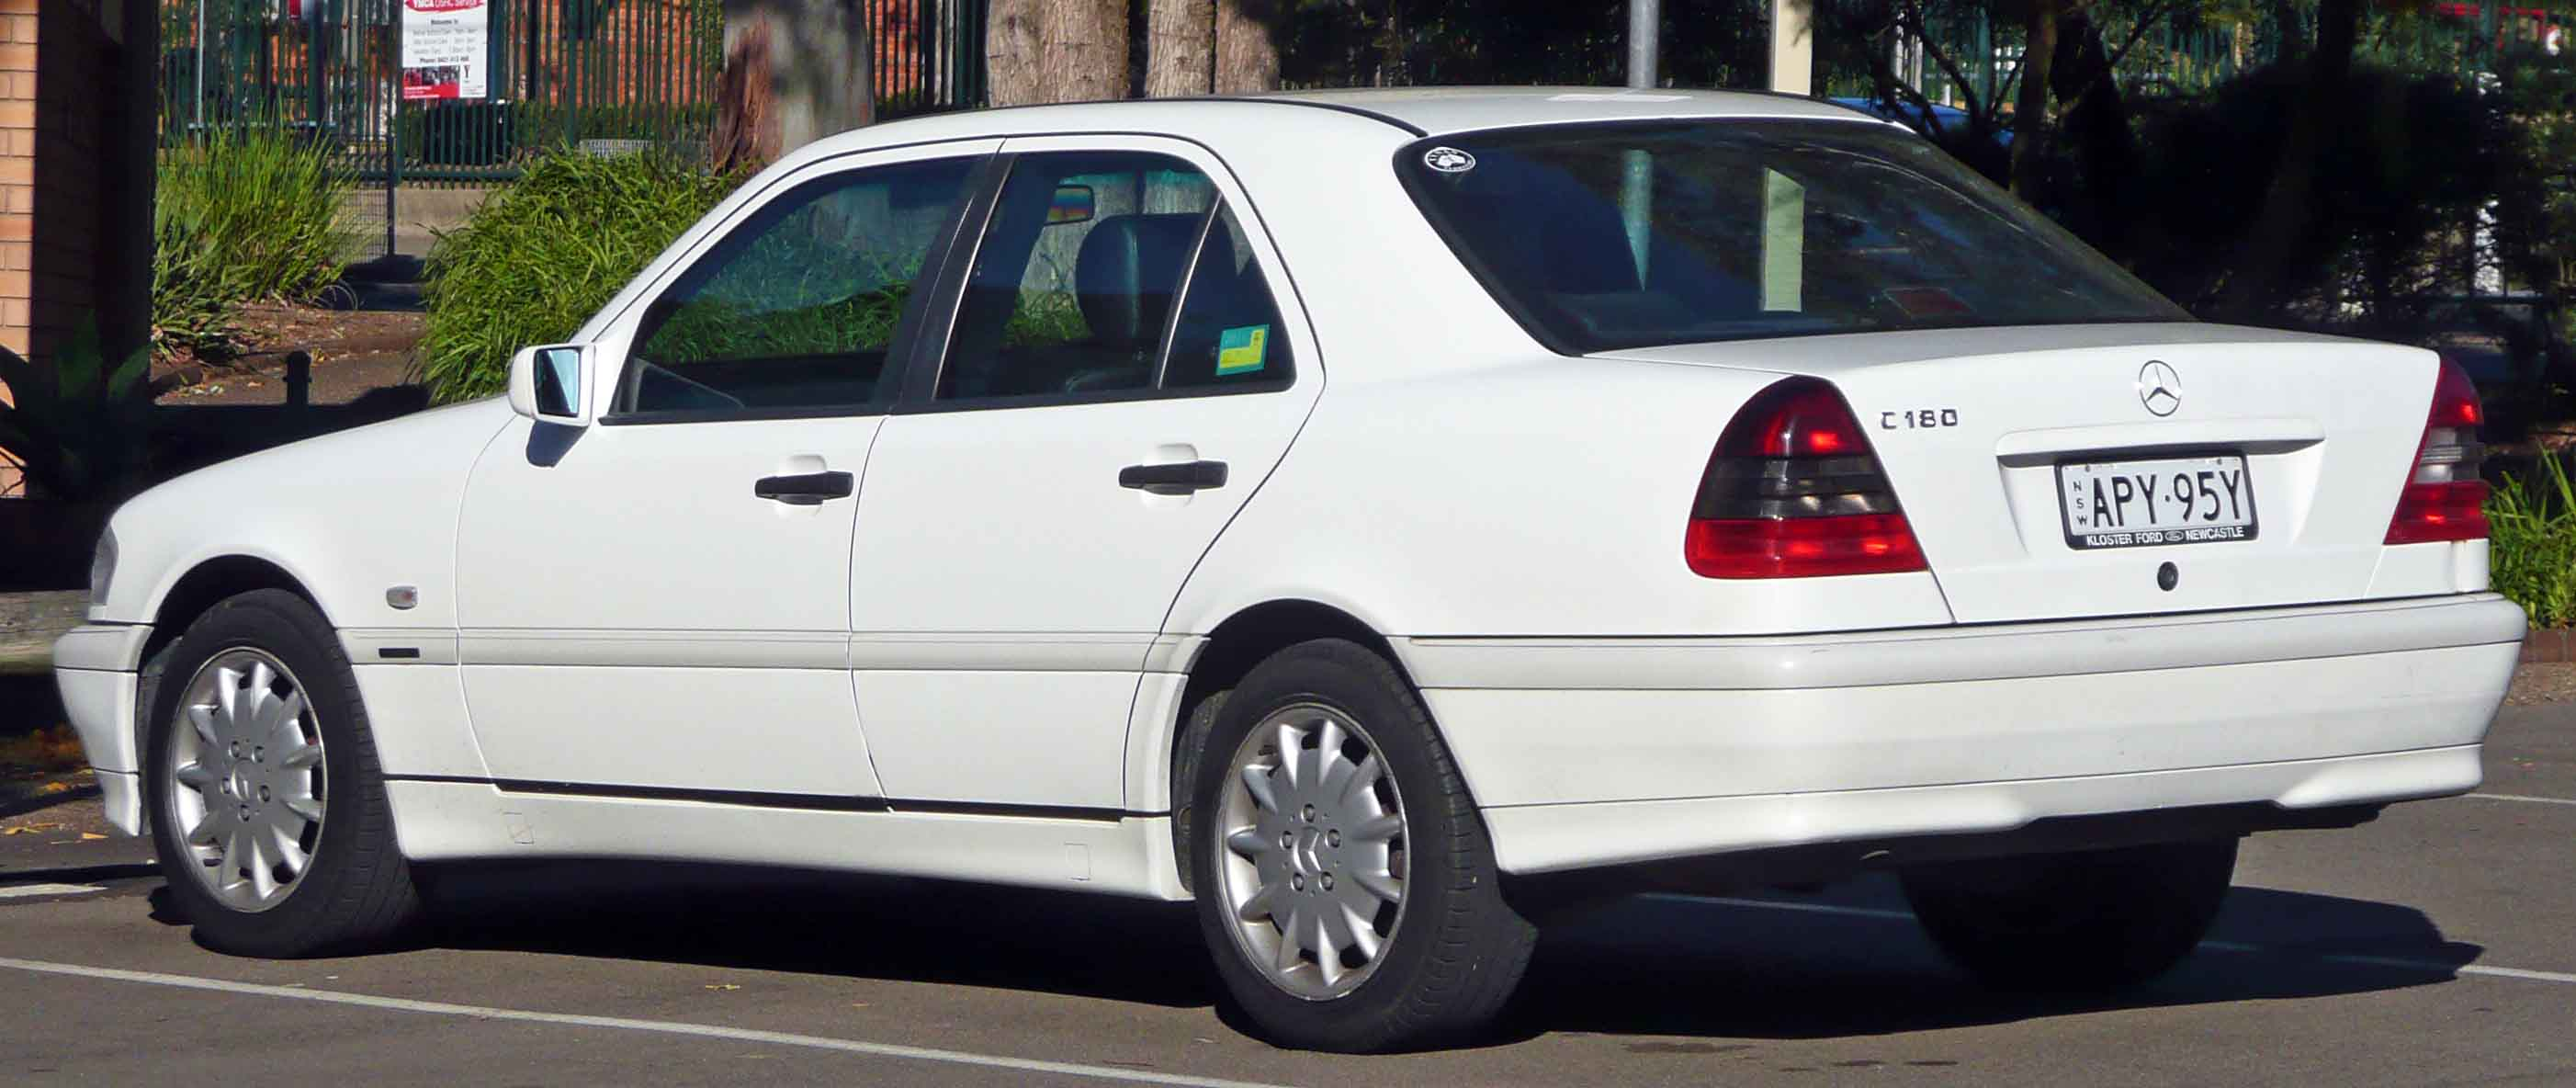 Mercedes-benz c180 photo - 3